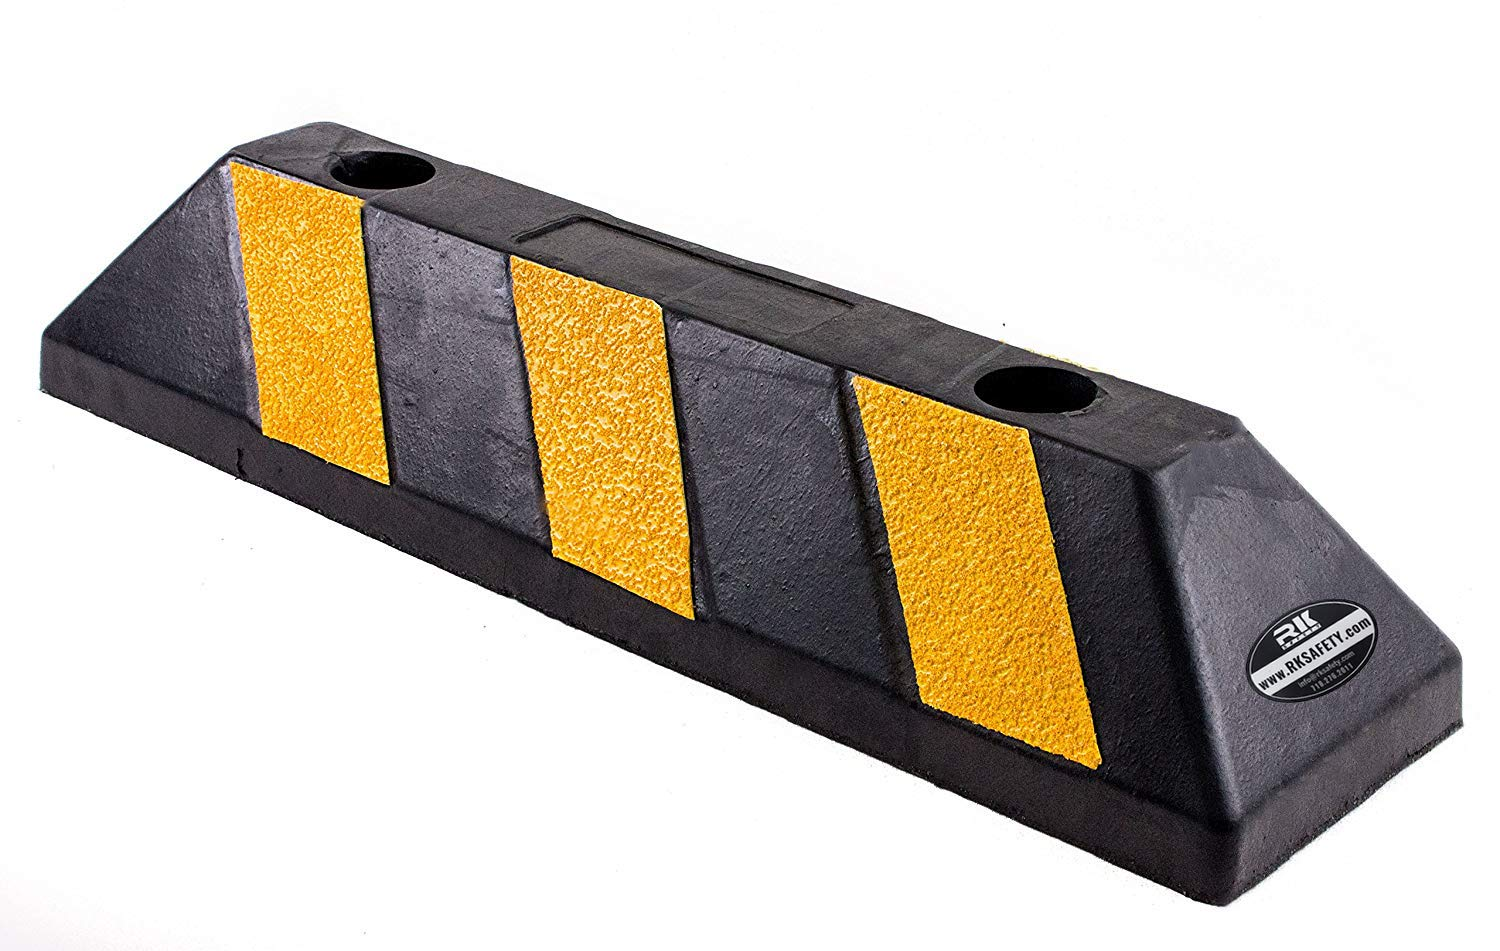 RK-BP22 Rubber Curb Truck Parking Block, 22 -Inch